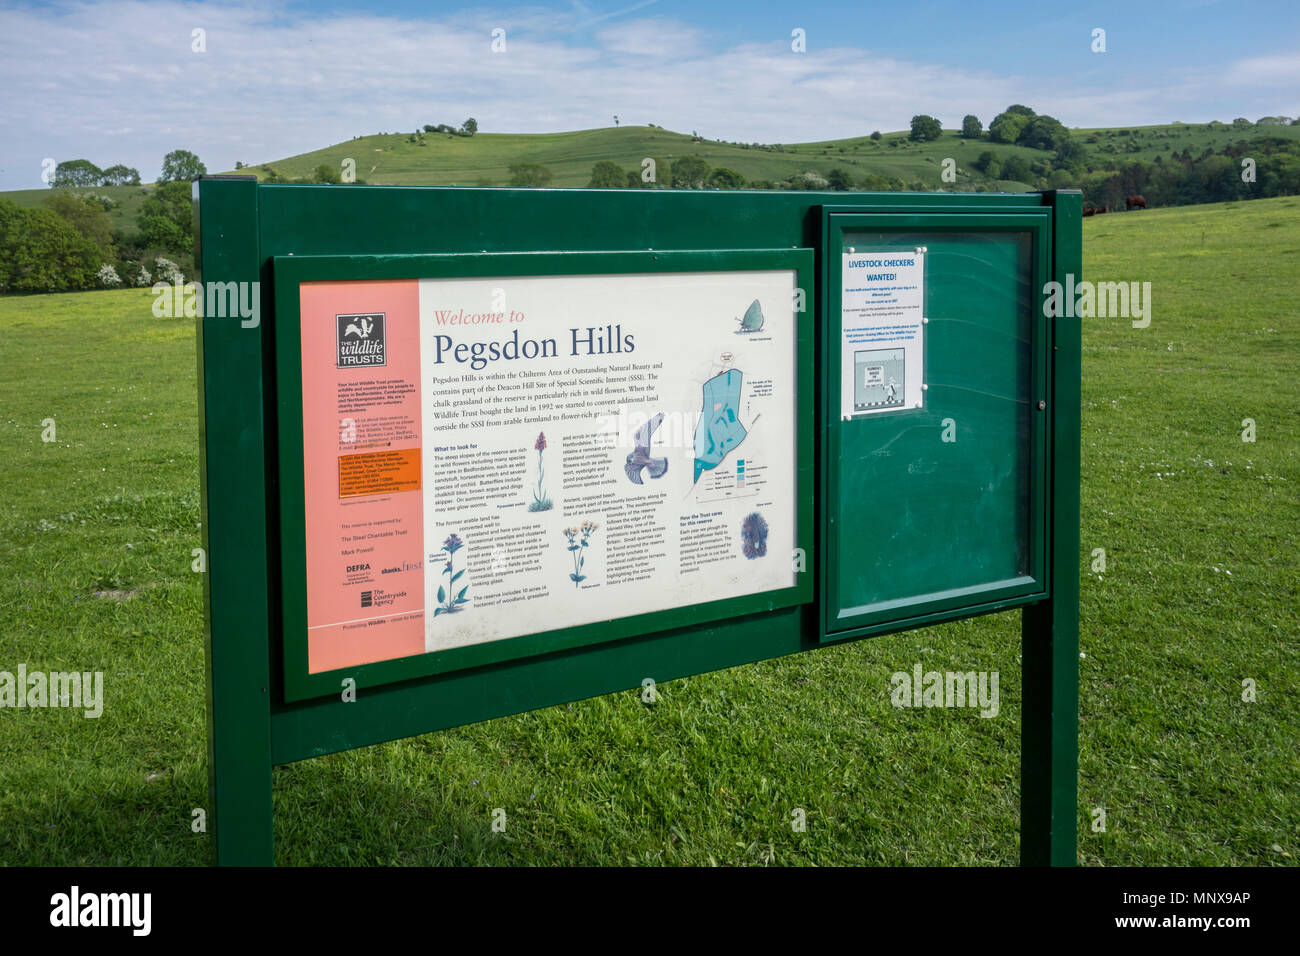 Pegsdon Hills and Hoo Bit, nature reserve in Pegsdon, Bedfordshire in the Chilterns Area of Outstanding Natural Beauty - Stock Image